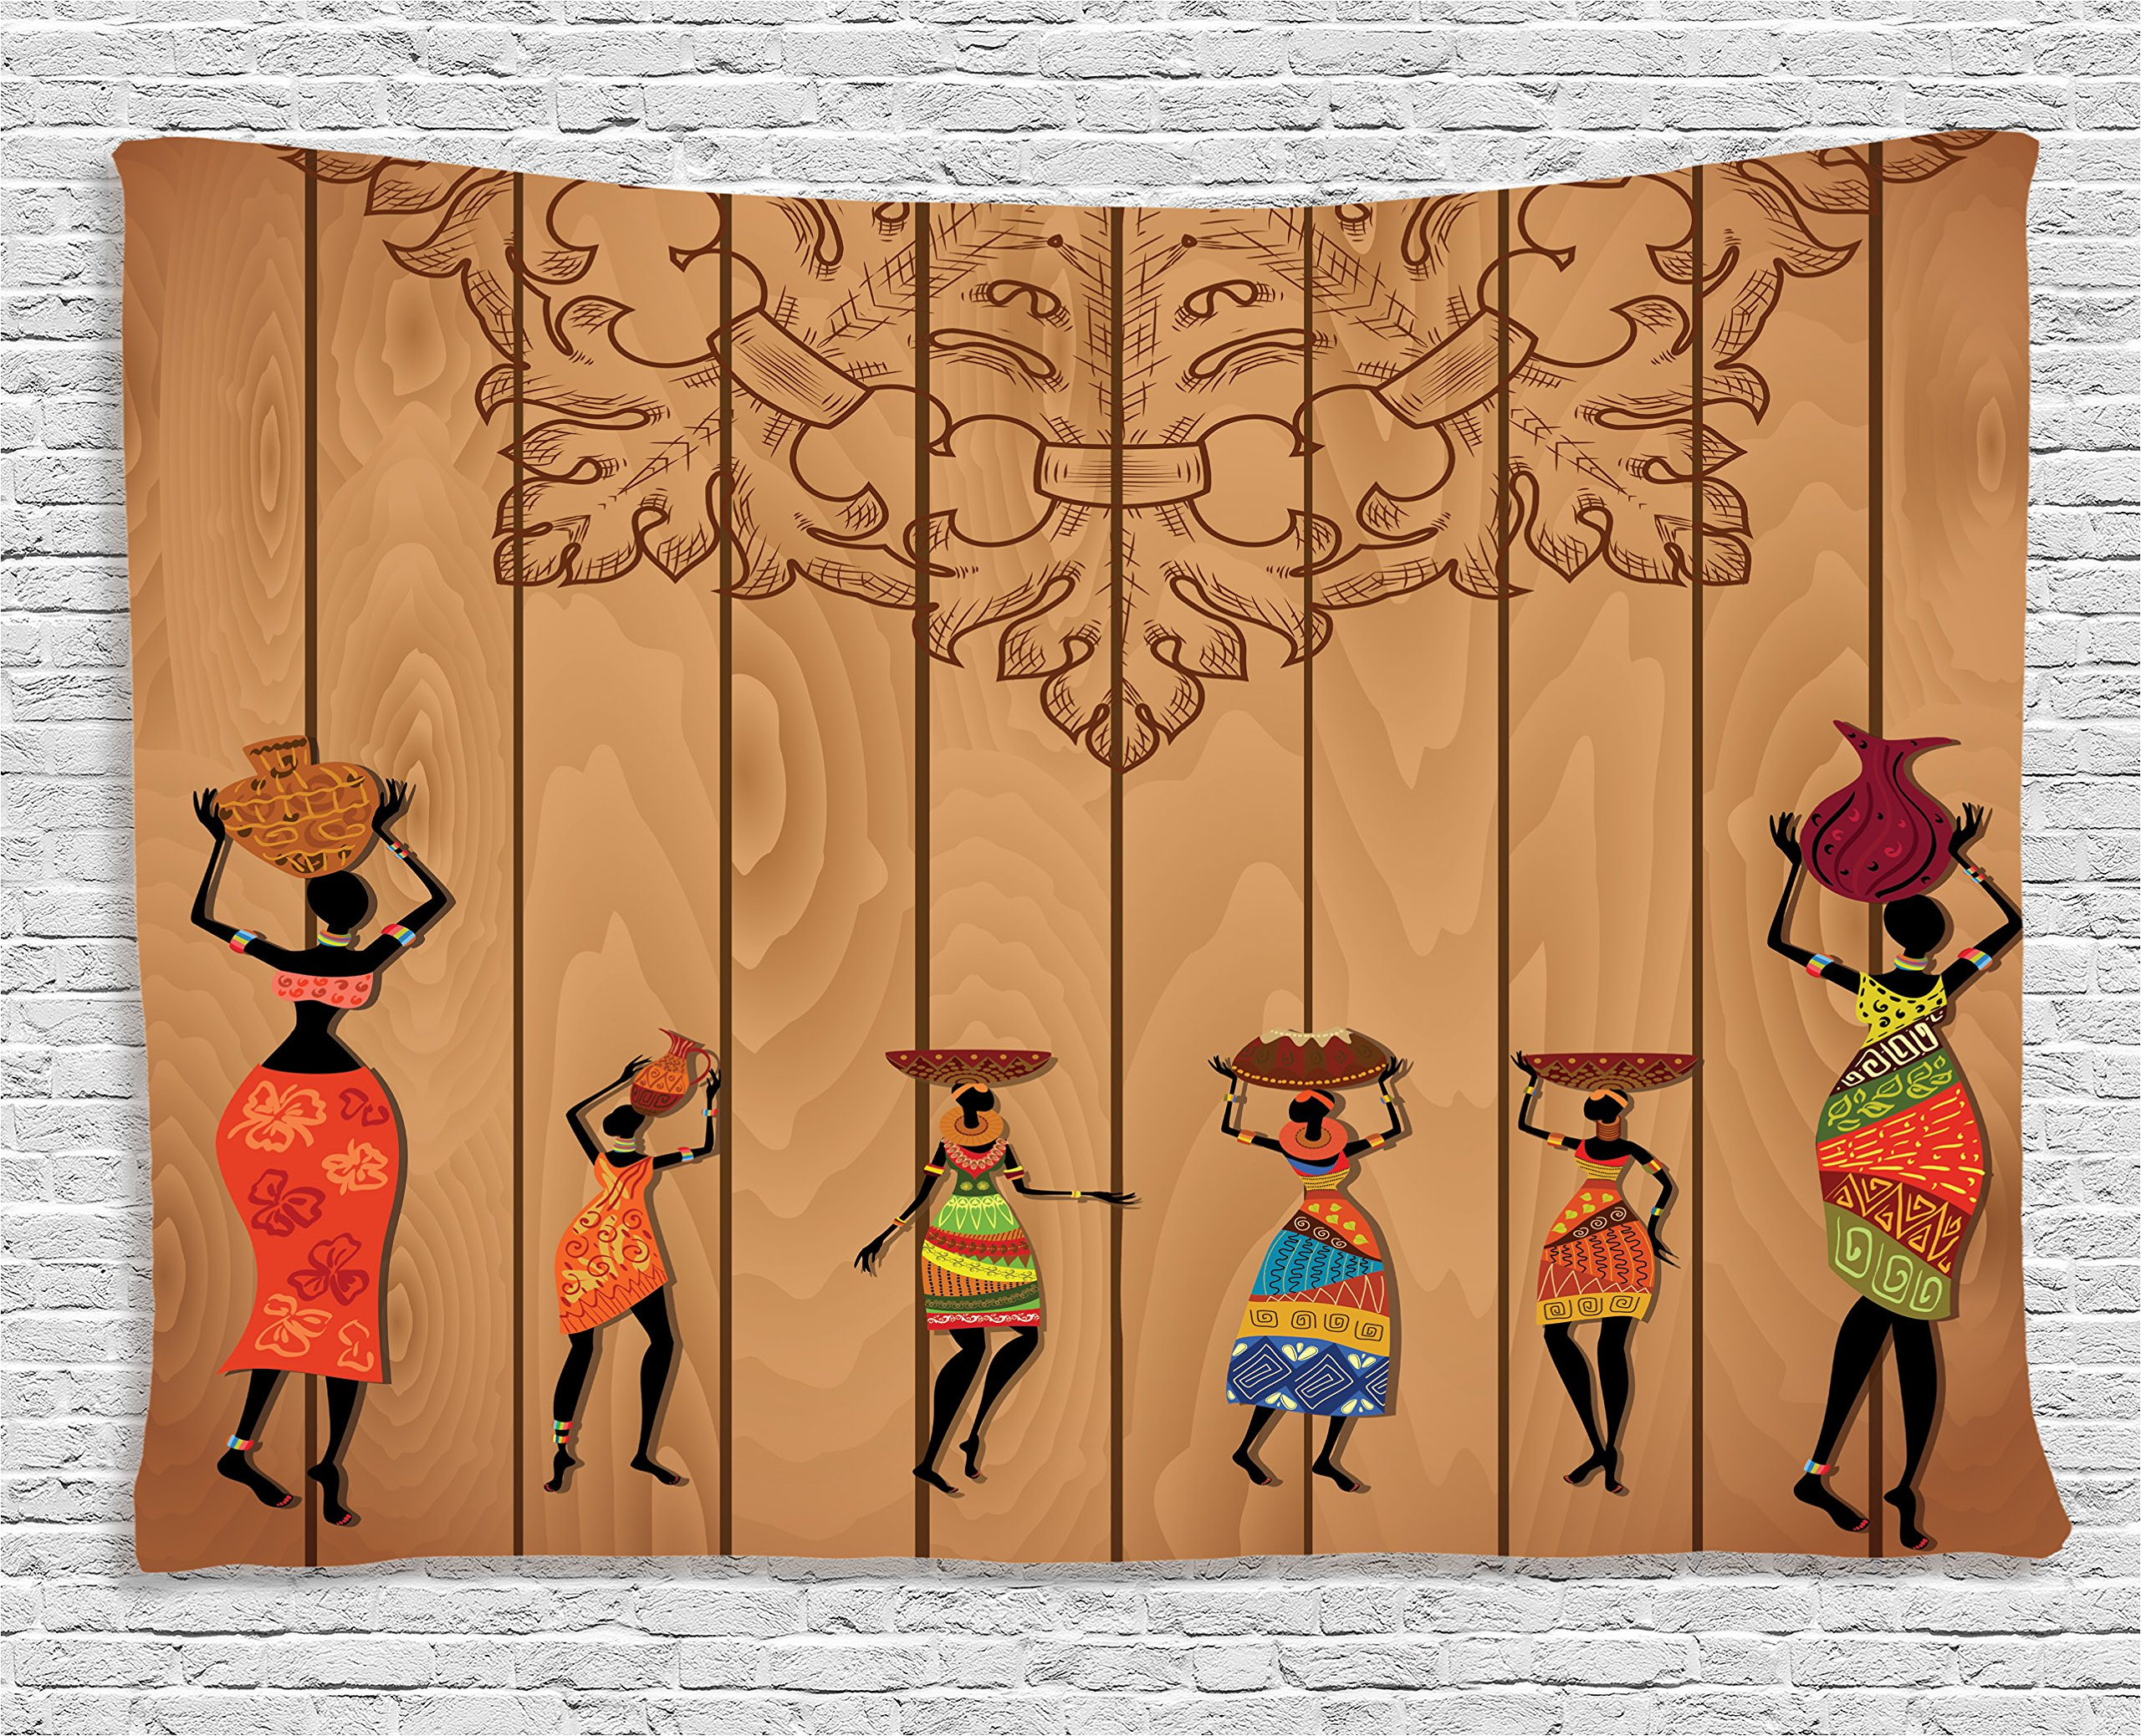 Ambesonne African Decor Tapestry, Ancient African Girl Images on Vintage Wooden Texture Ethnic Female Fashion Art Concept, Wall Hanging for Bedroom Living Room Dorm, 60 W X 40 L inches, Multicolor